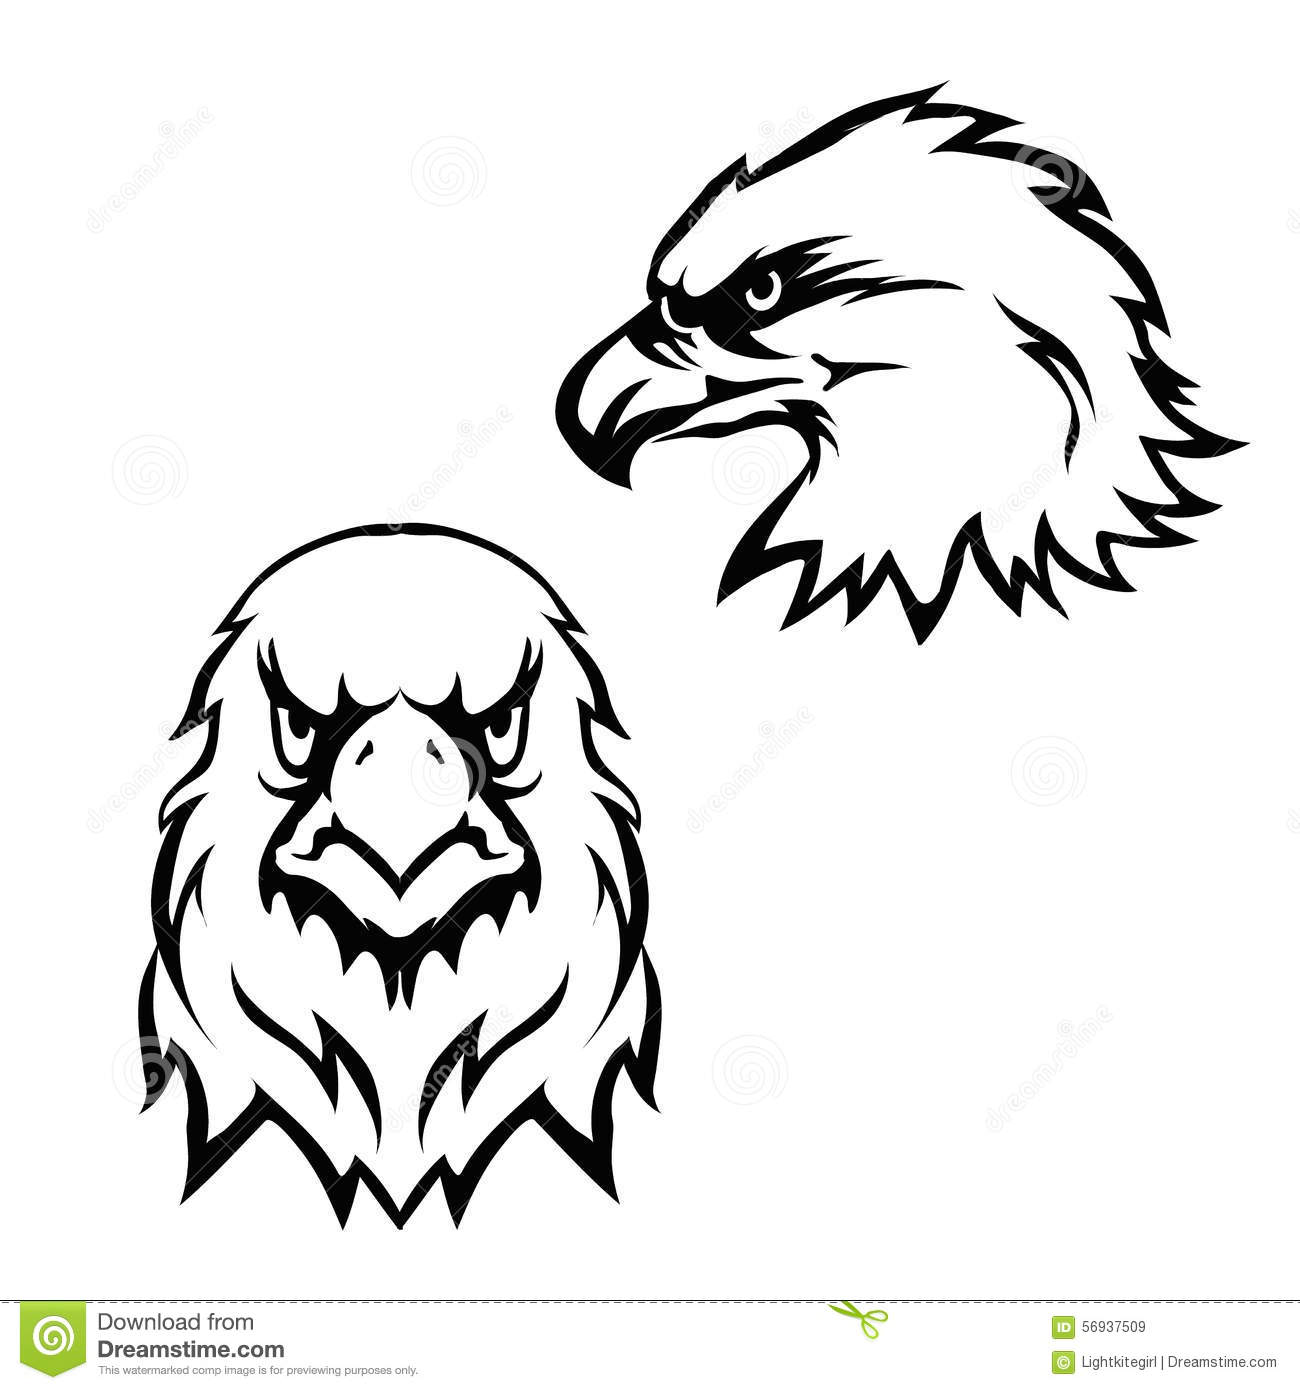 Eagle head logo black and white - photo#16